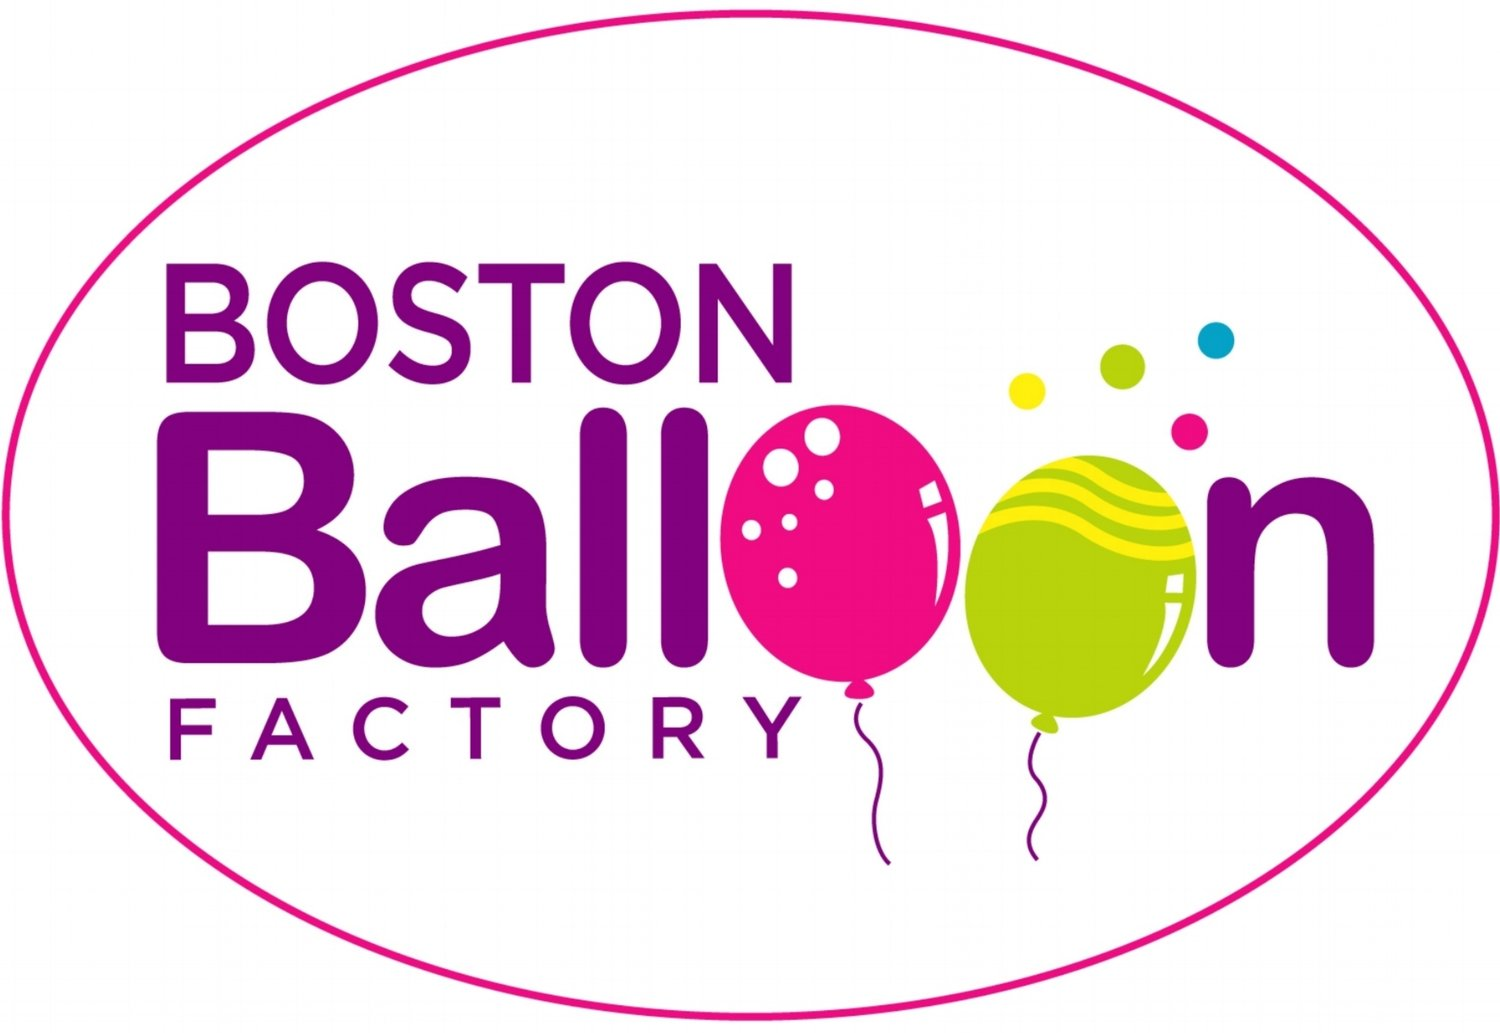 Number And Letter Balloons For Events  Boston Balloon Factory